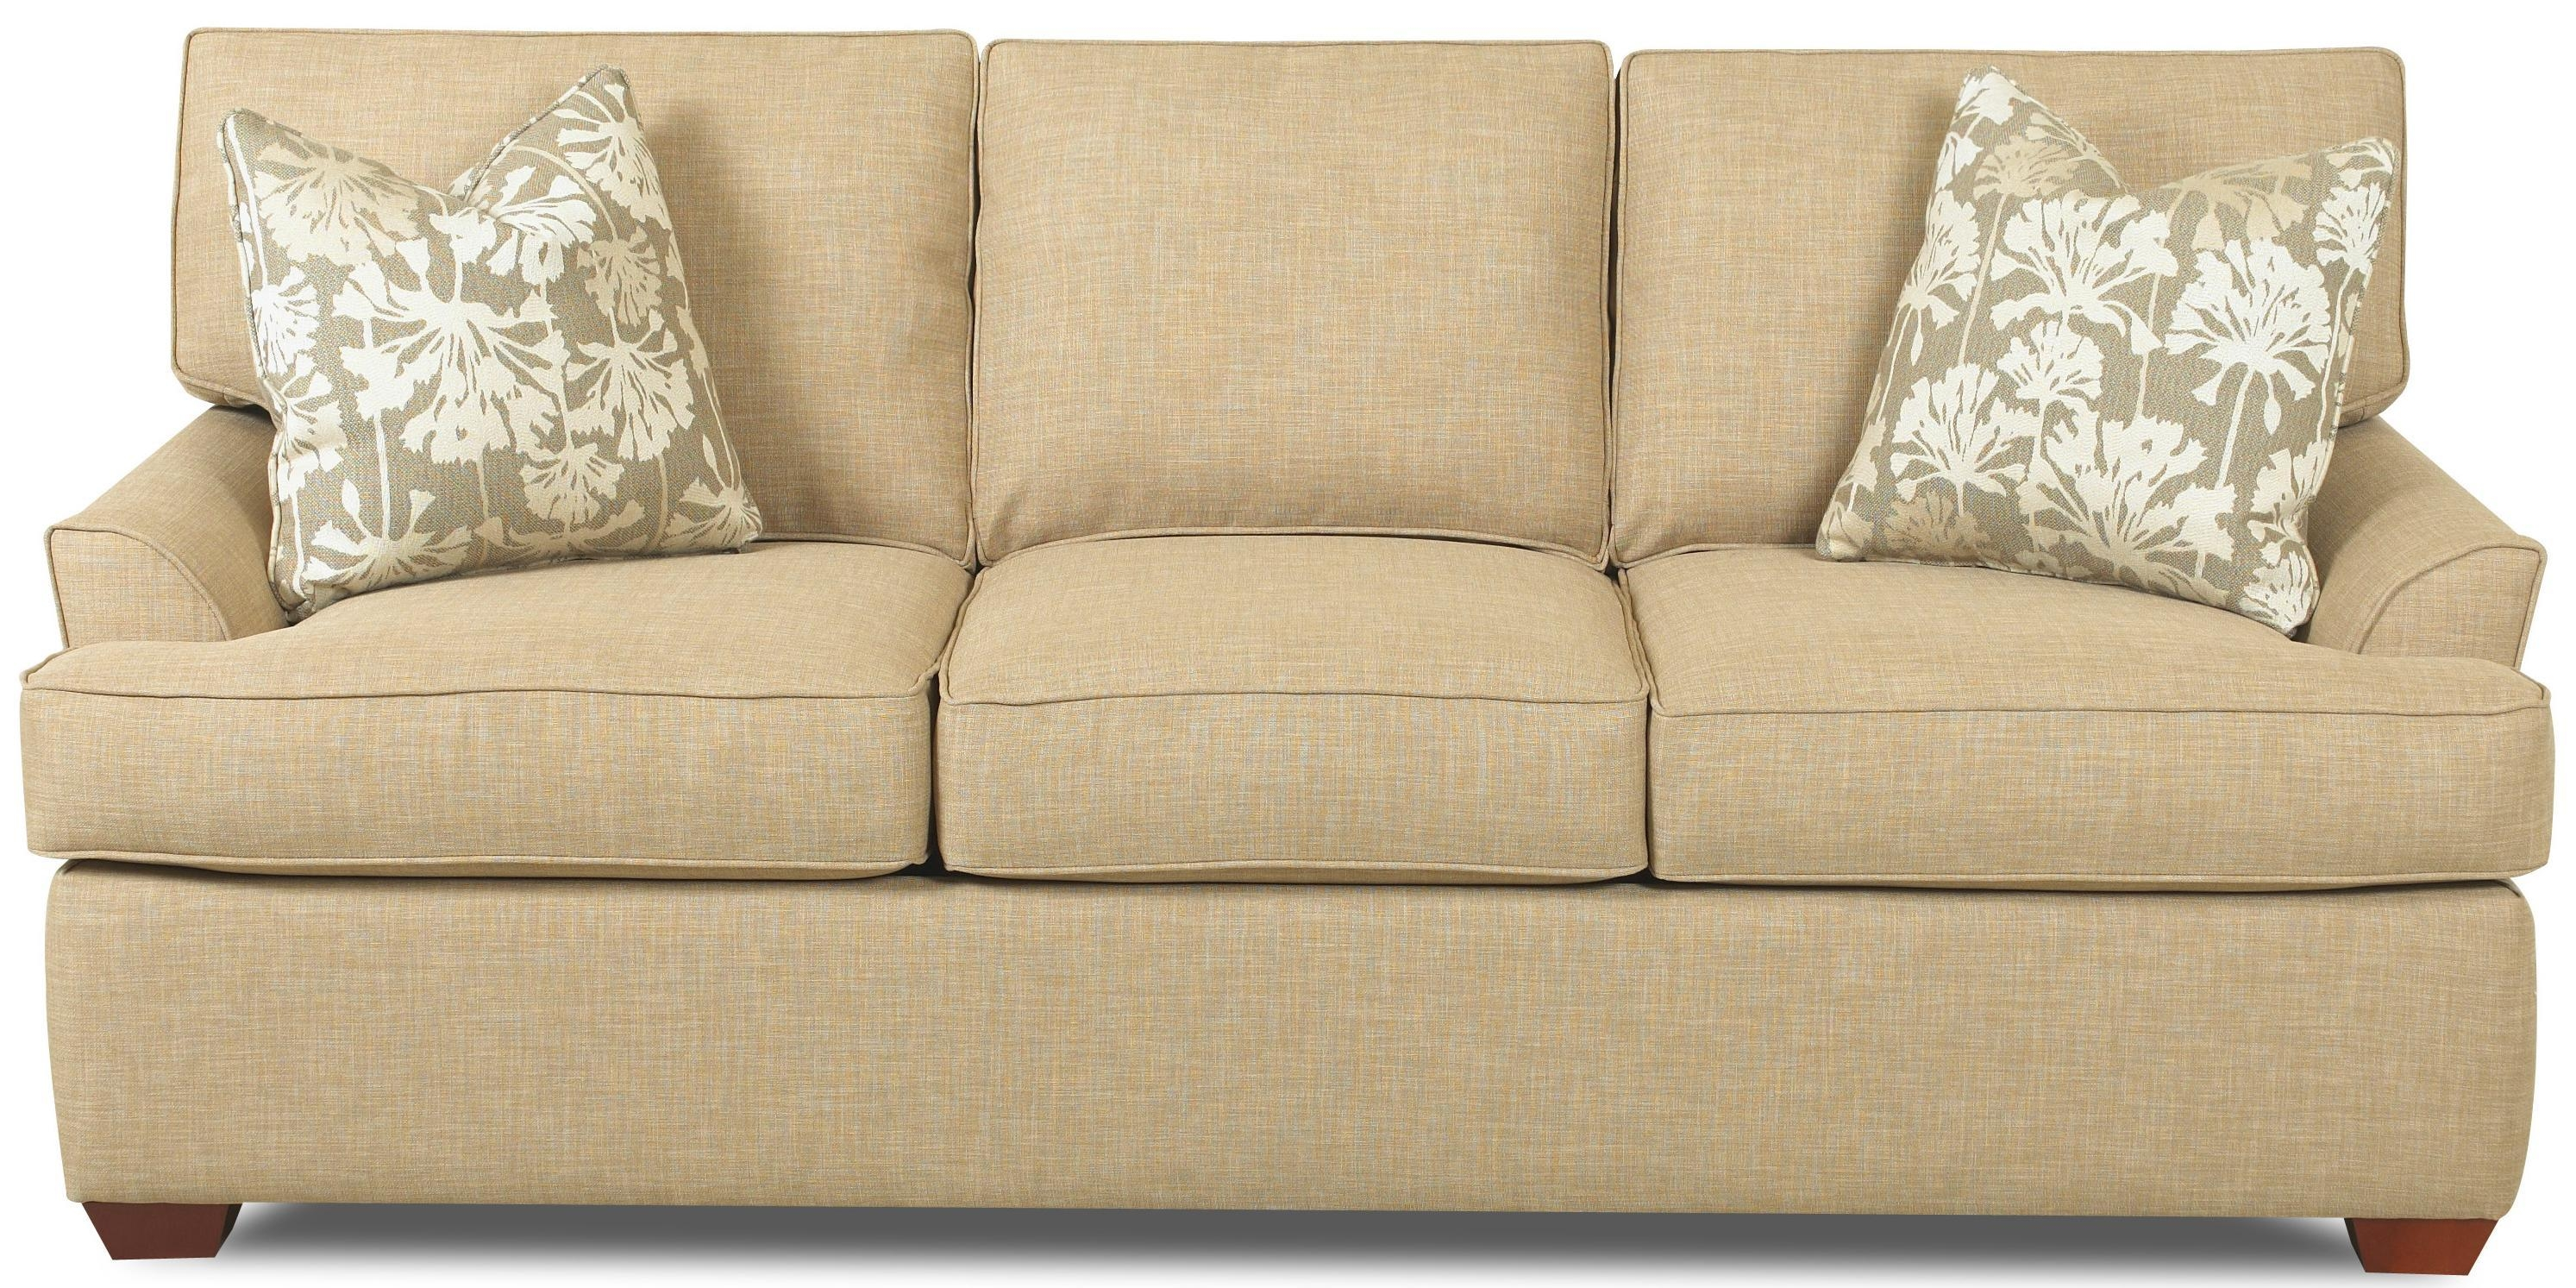 Contemporary 3 Seat Sofa With Flared Arms And T Seat Cushions Within Sofa Cushions (Image 4 of 21)